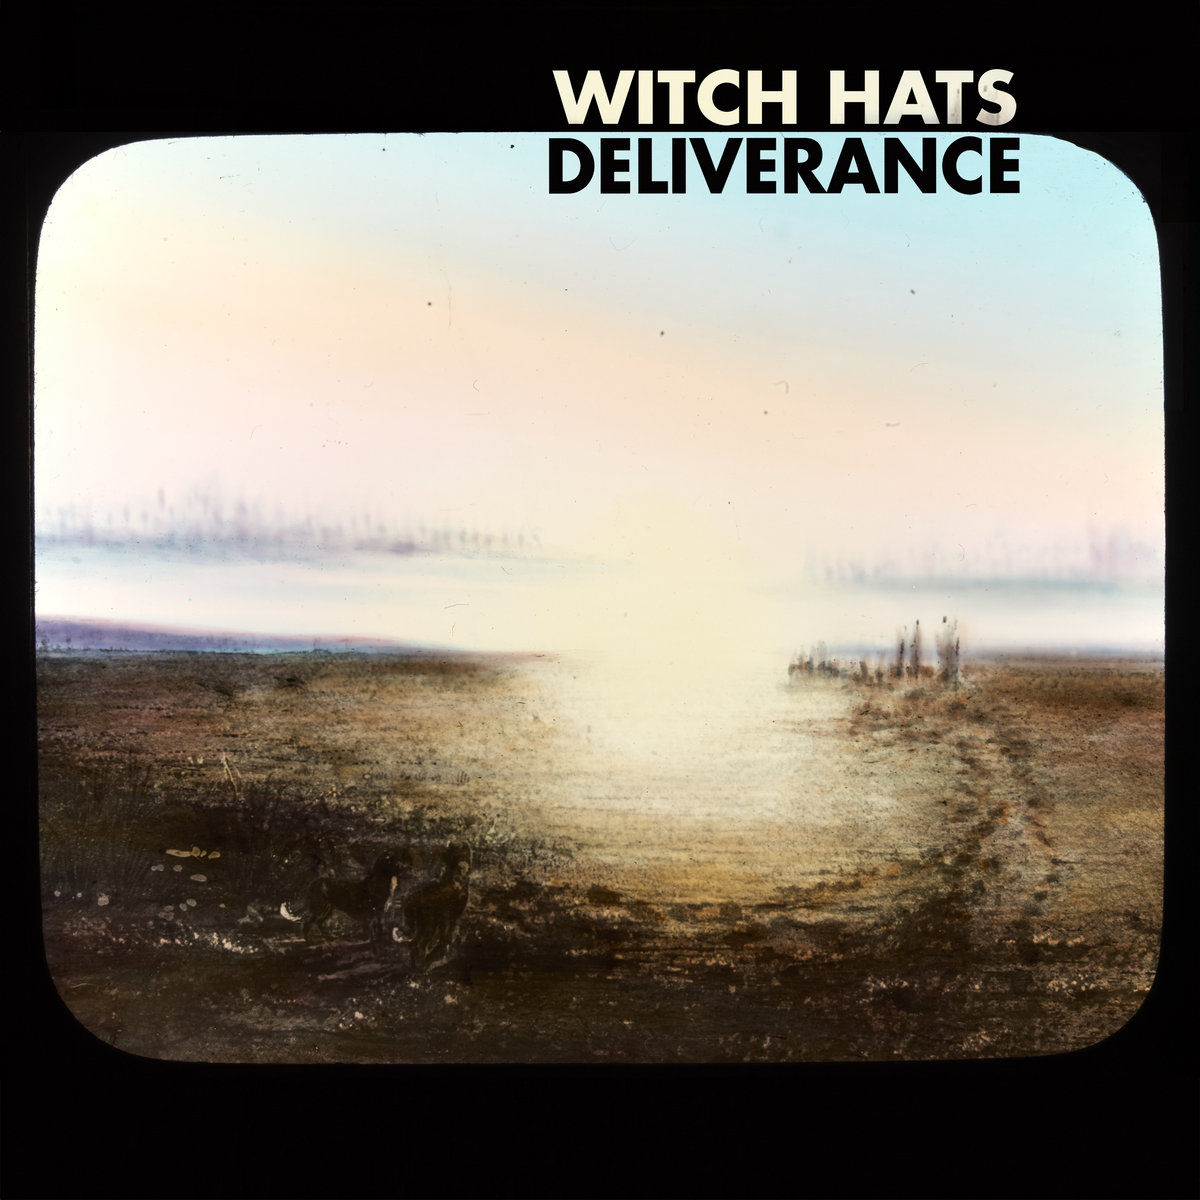 Bildresultat för witch hats deliverance